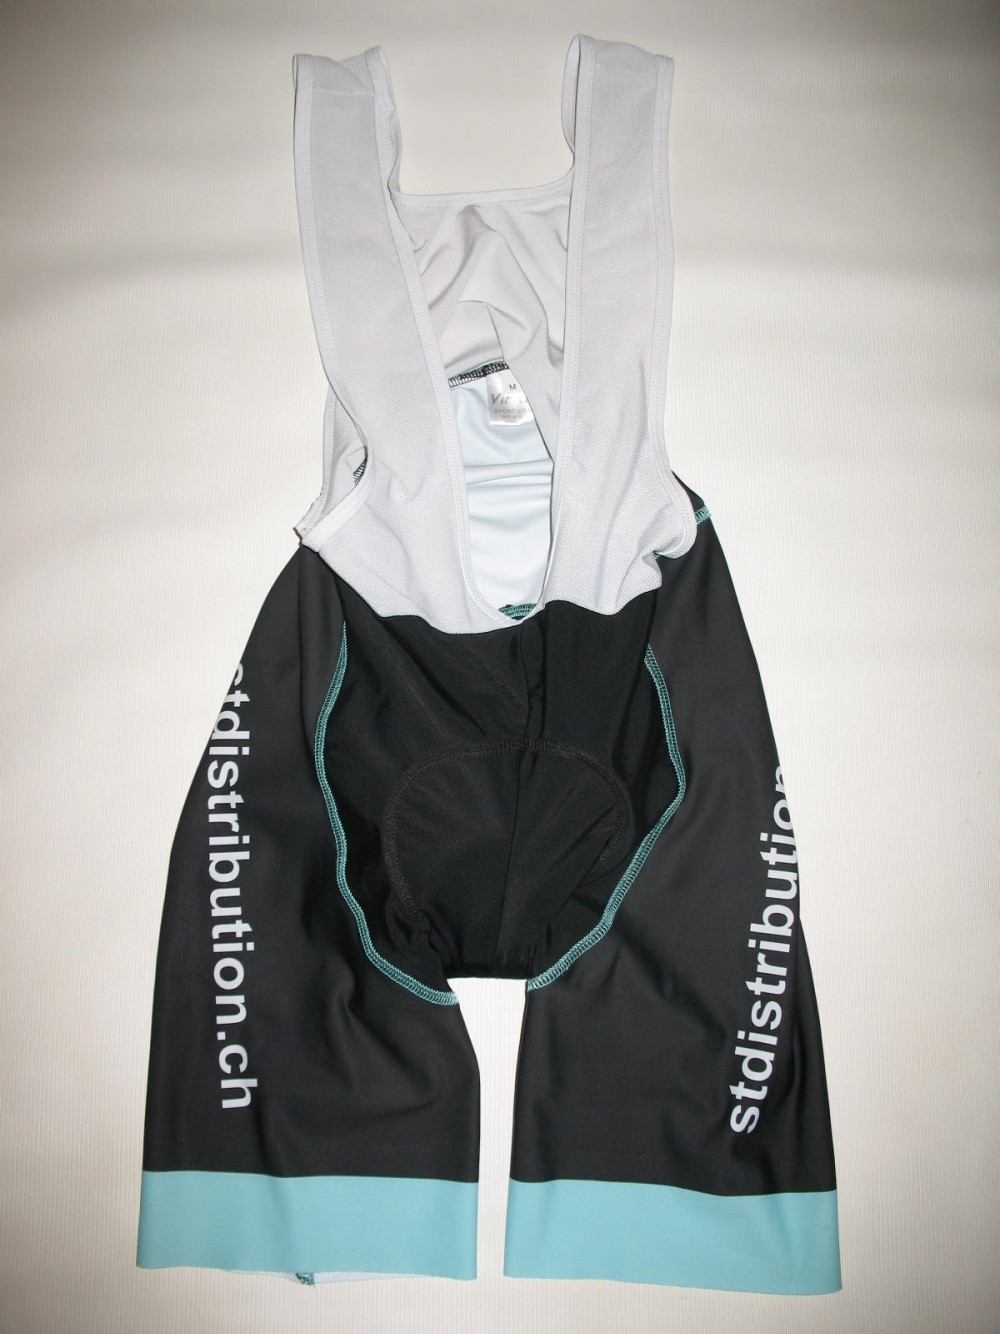 Велошорты VIFRA bib cycling shorts (размер М) - 1